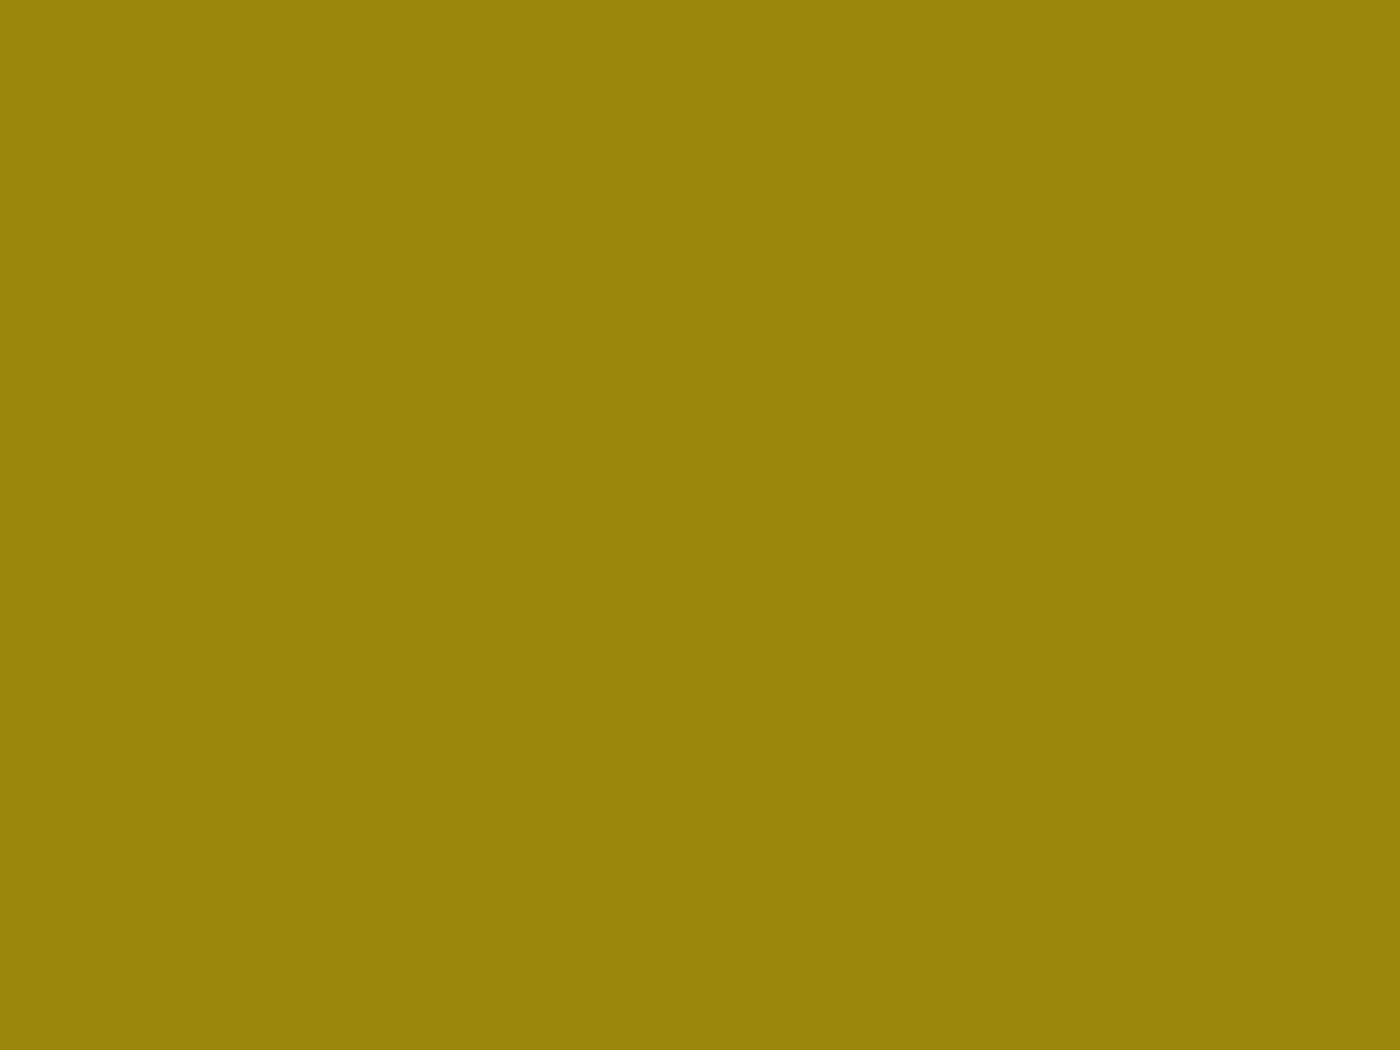 1400x1050 Dark Yellow Solid Color Background